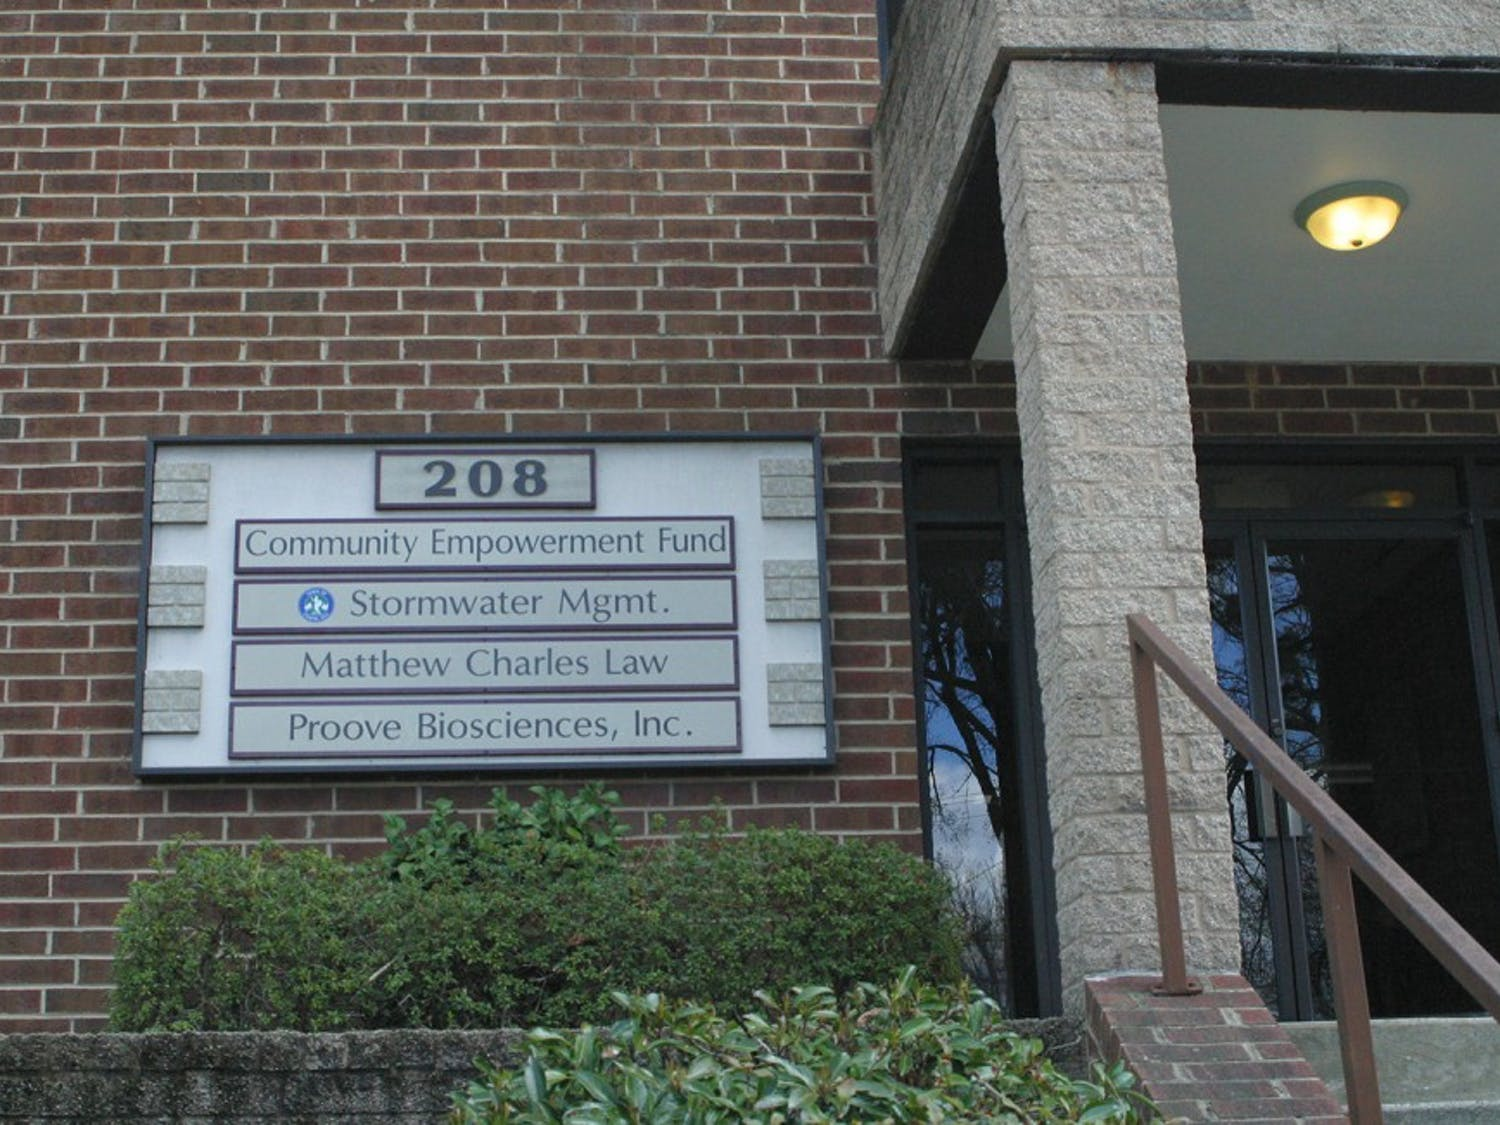 The Community Empowerment Fund, which works to aid transitions from homelessness and poverty, has anoffice location in Chapel Hill.